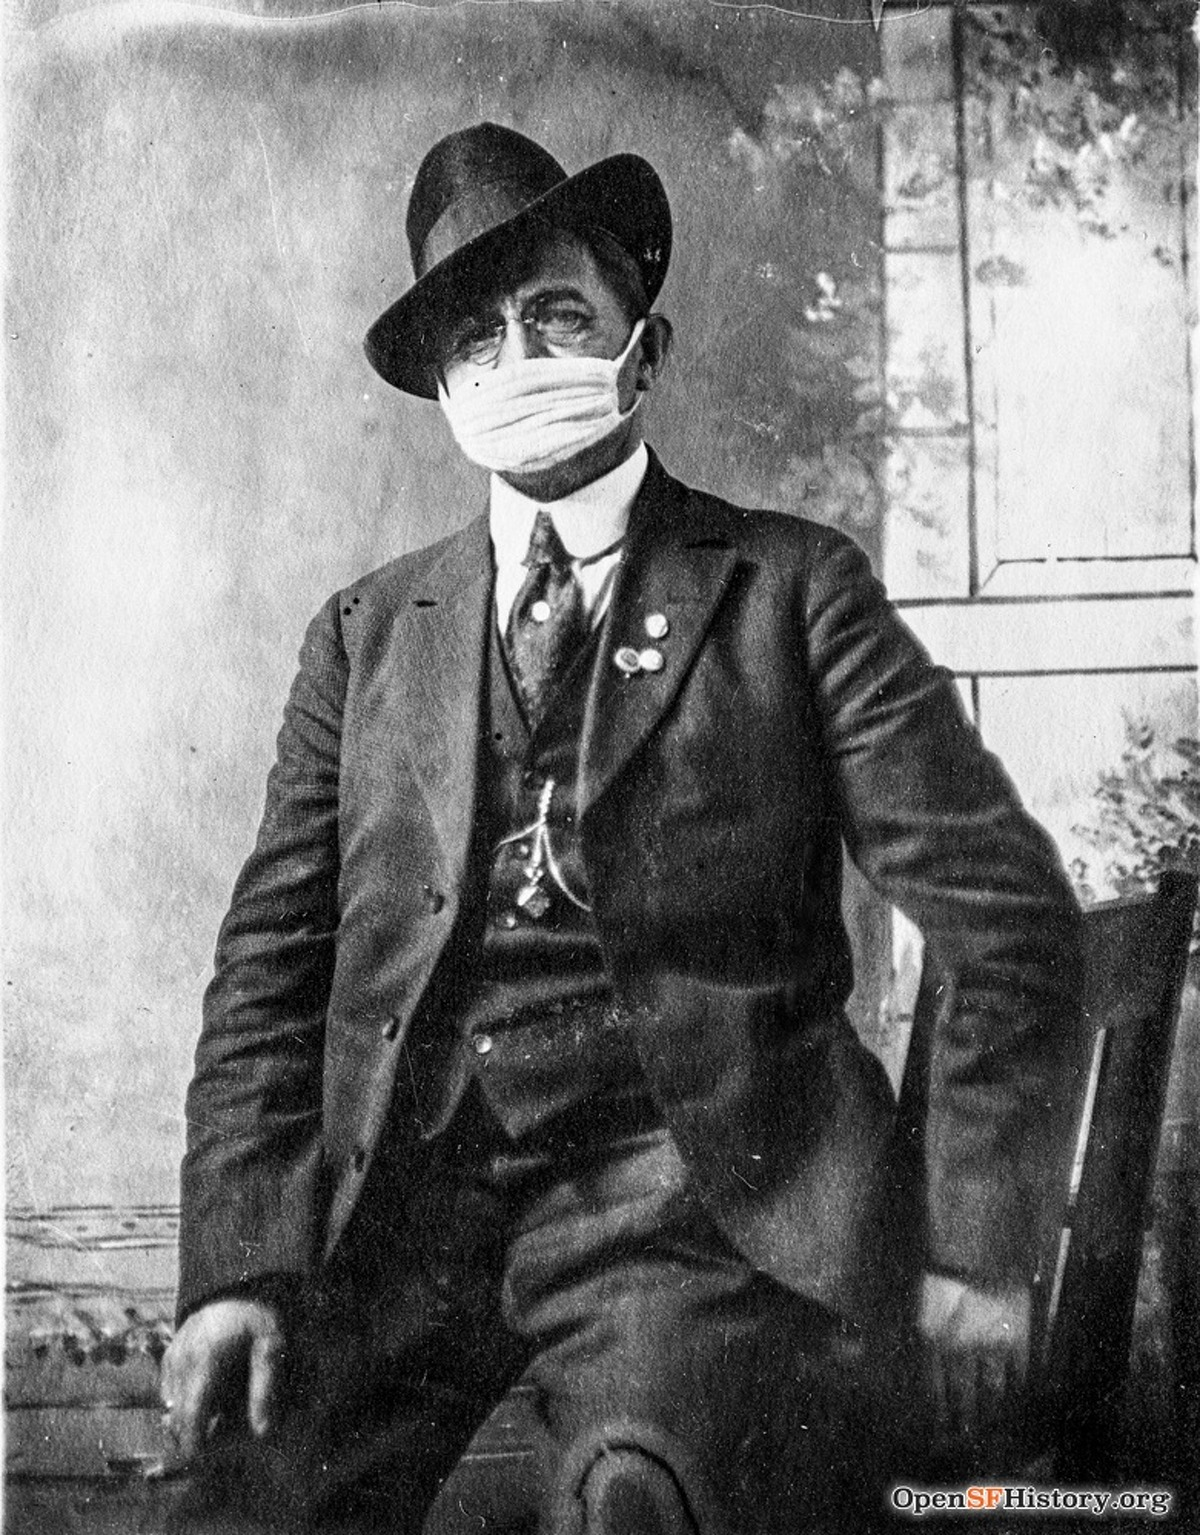 A man in San Francisco poses for a photograph while wearing an wearing influenza mask during the 1918 Spanish Flu Pandemic.